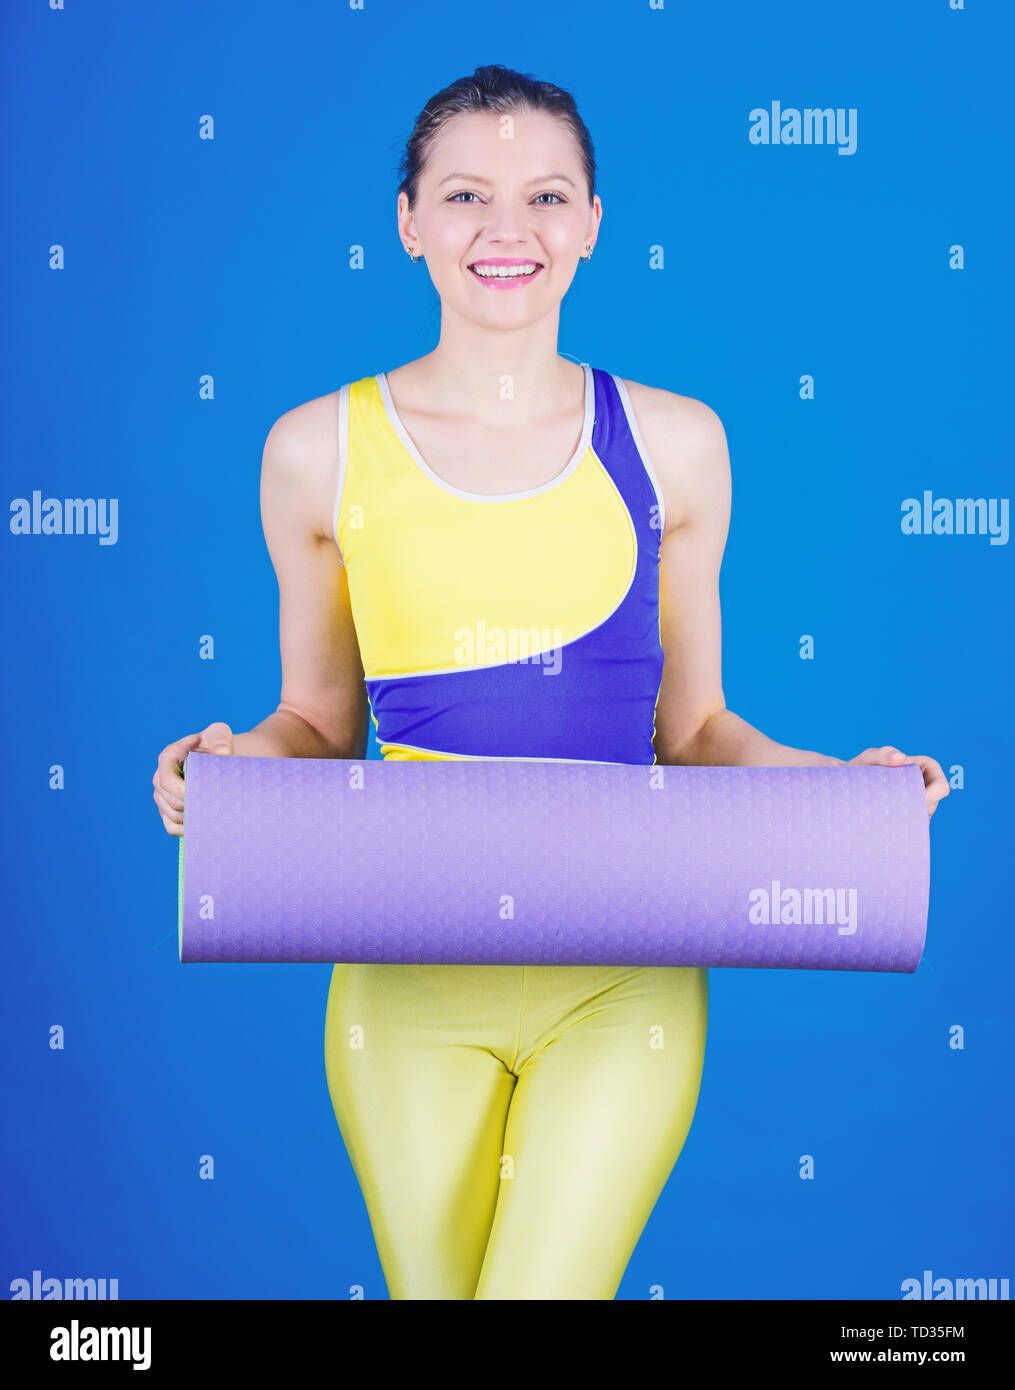 Balance your life. Health diet. Success. Sporty woman training in gym. Sport mat equipment. Athletic fitness. Strong muscles and power. Happy woman workout with fitness mat. sport and balance. - Stock Image